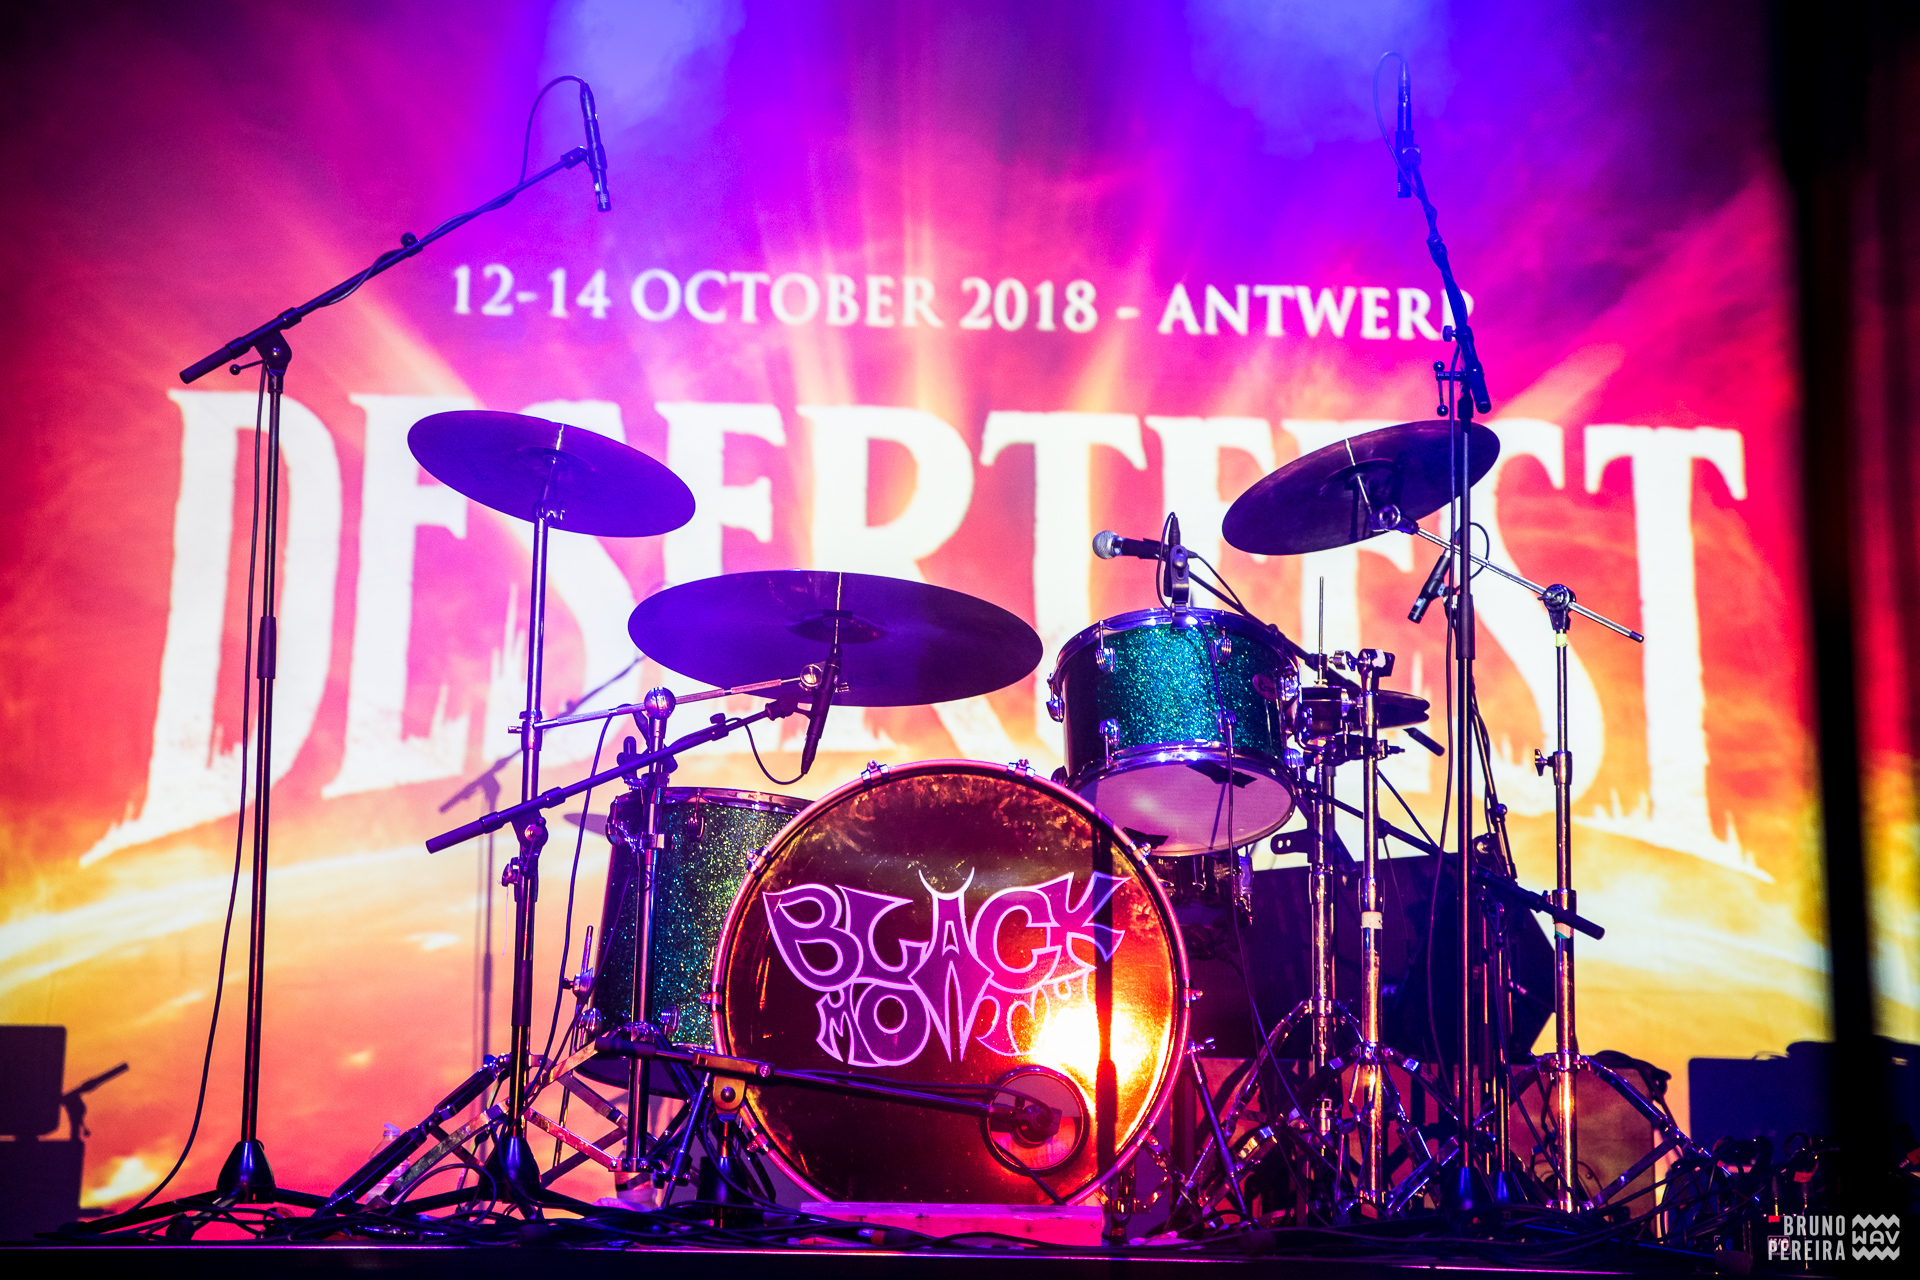 Desertfest Belgium 2018 [12-14Oct] Photo Galleries